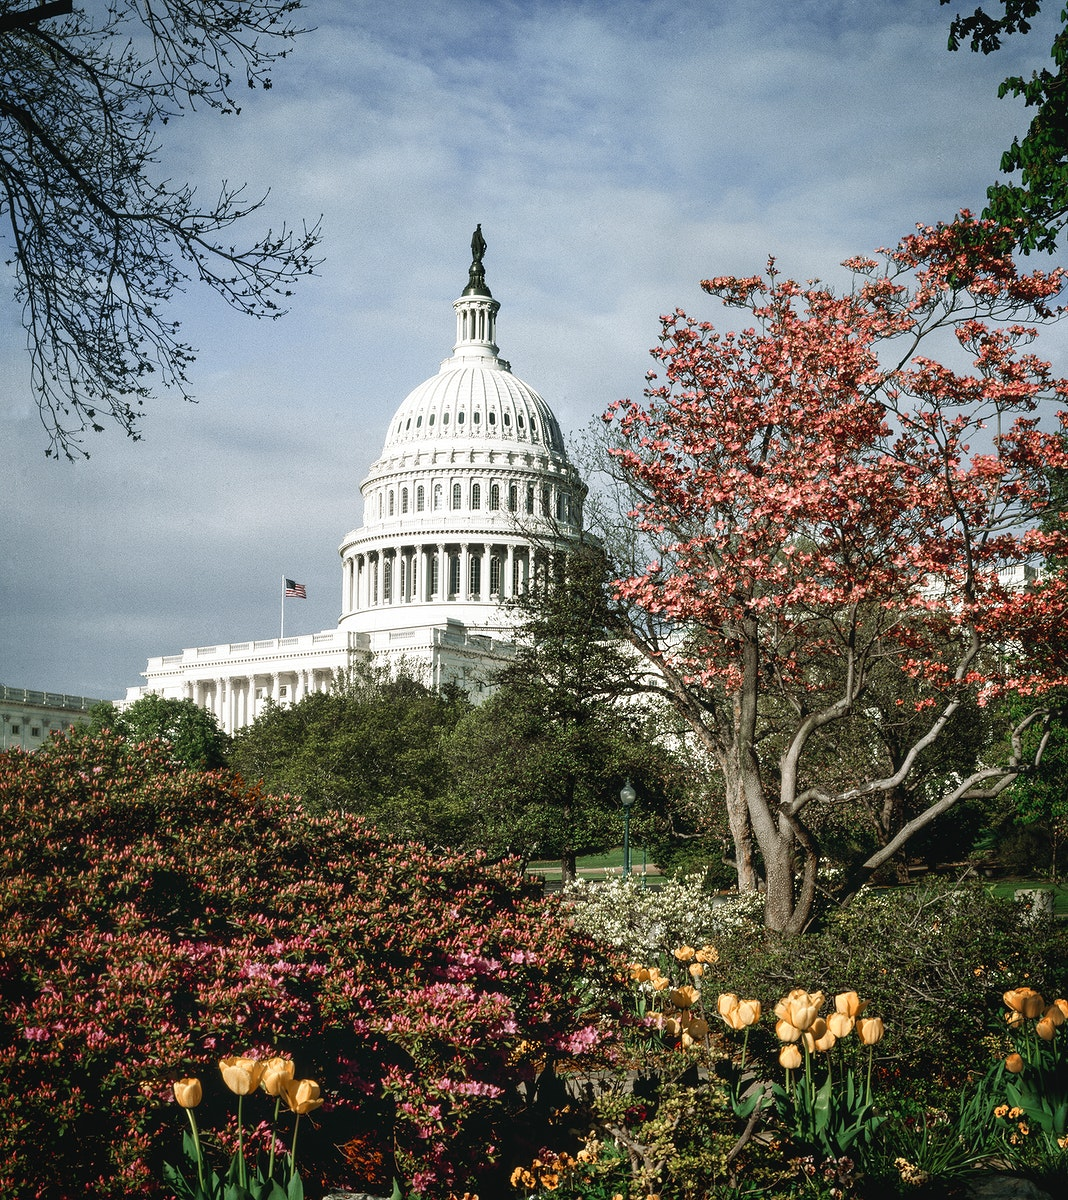 Capitol Hill, Washington D.C.Original image from Carol M. Highsmith's America, Library of Congress collection.…